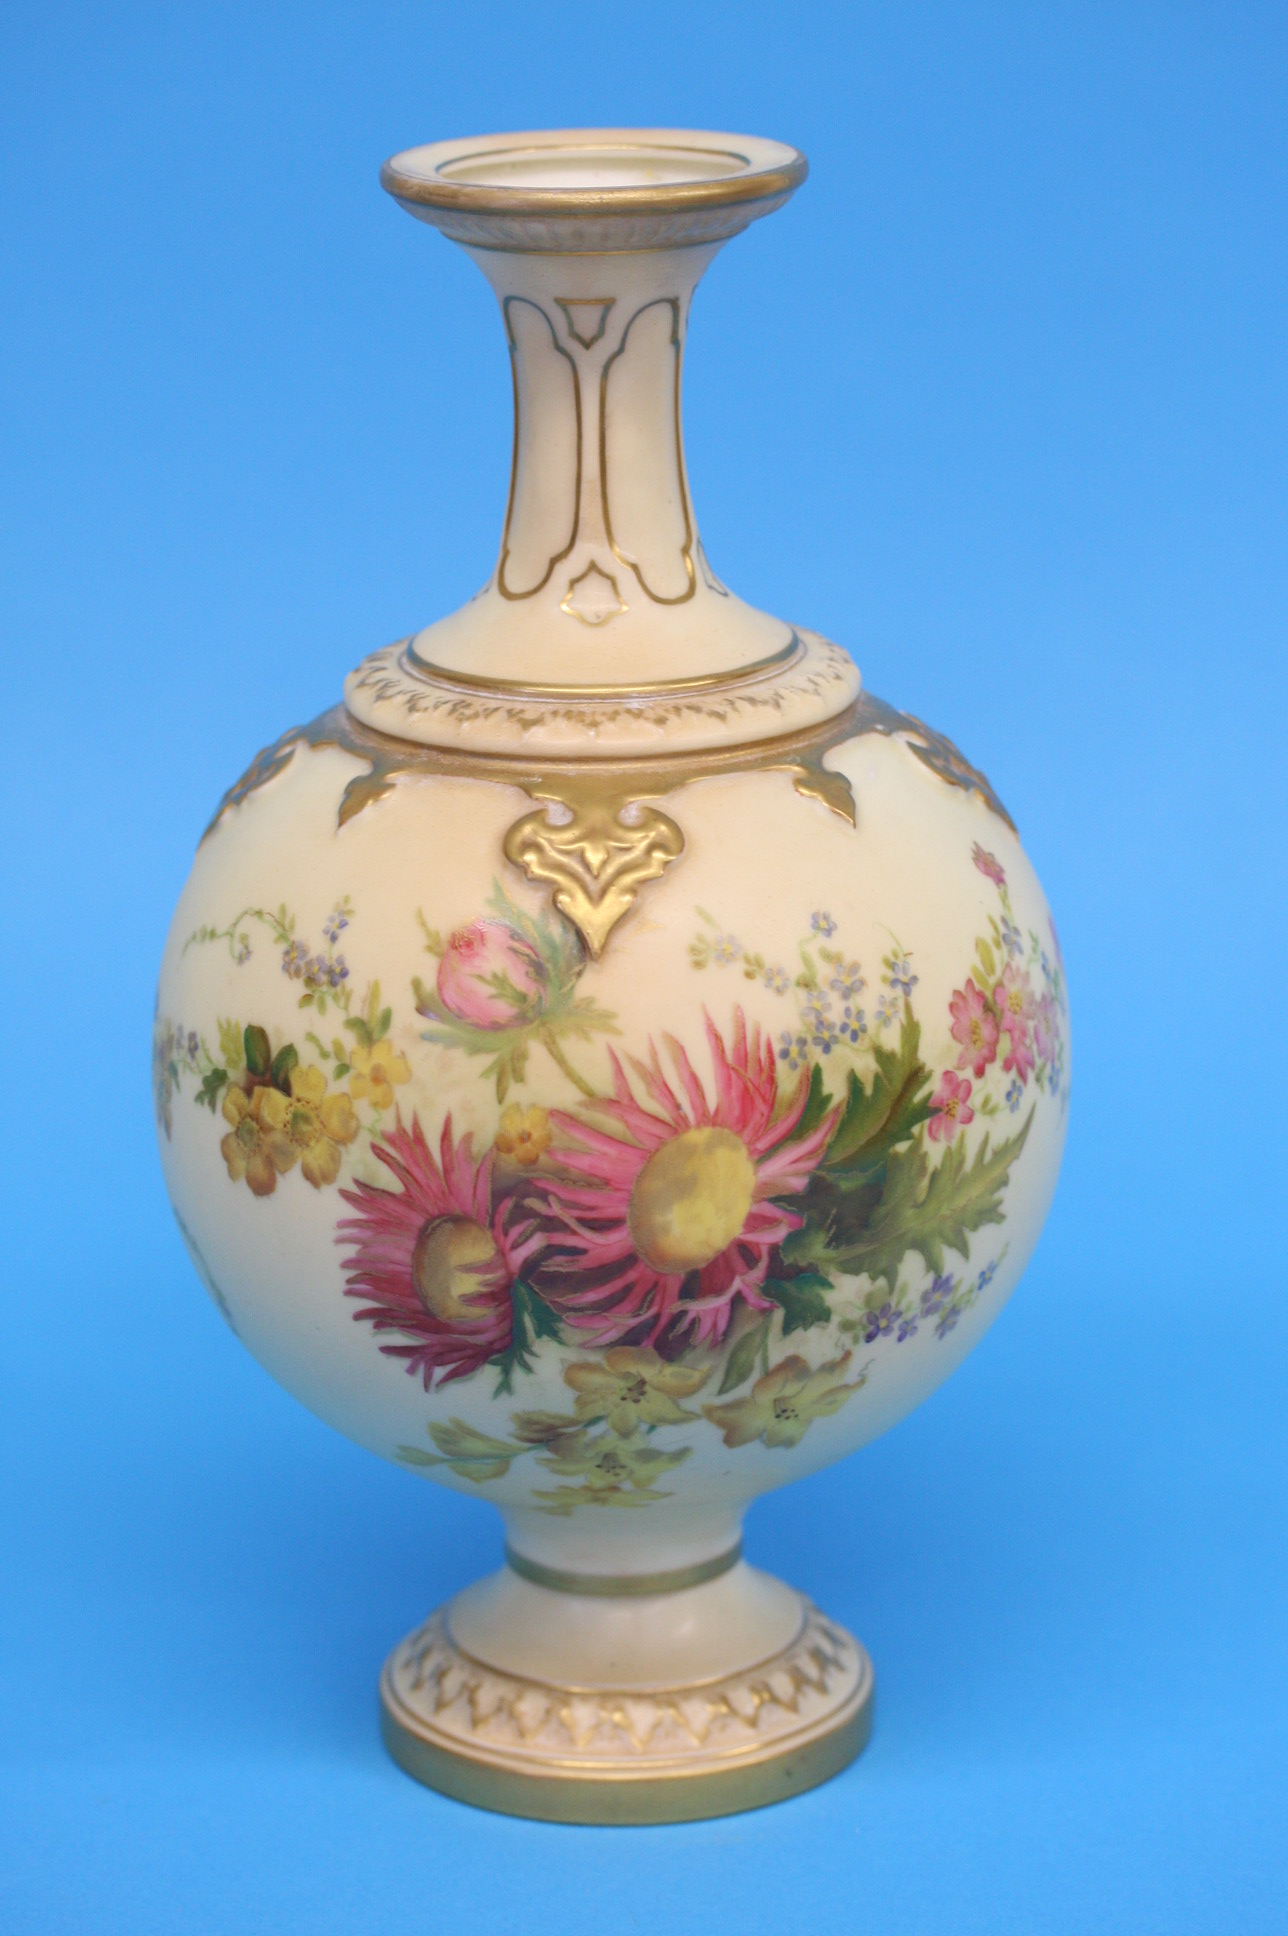 A Royal Worcester vase decorated with holly leaves